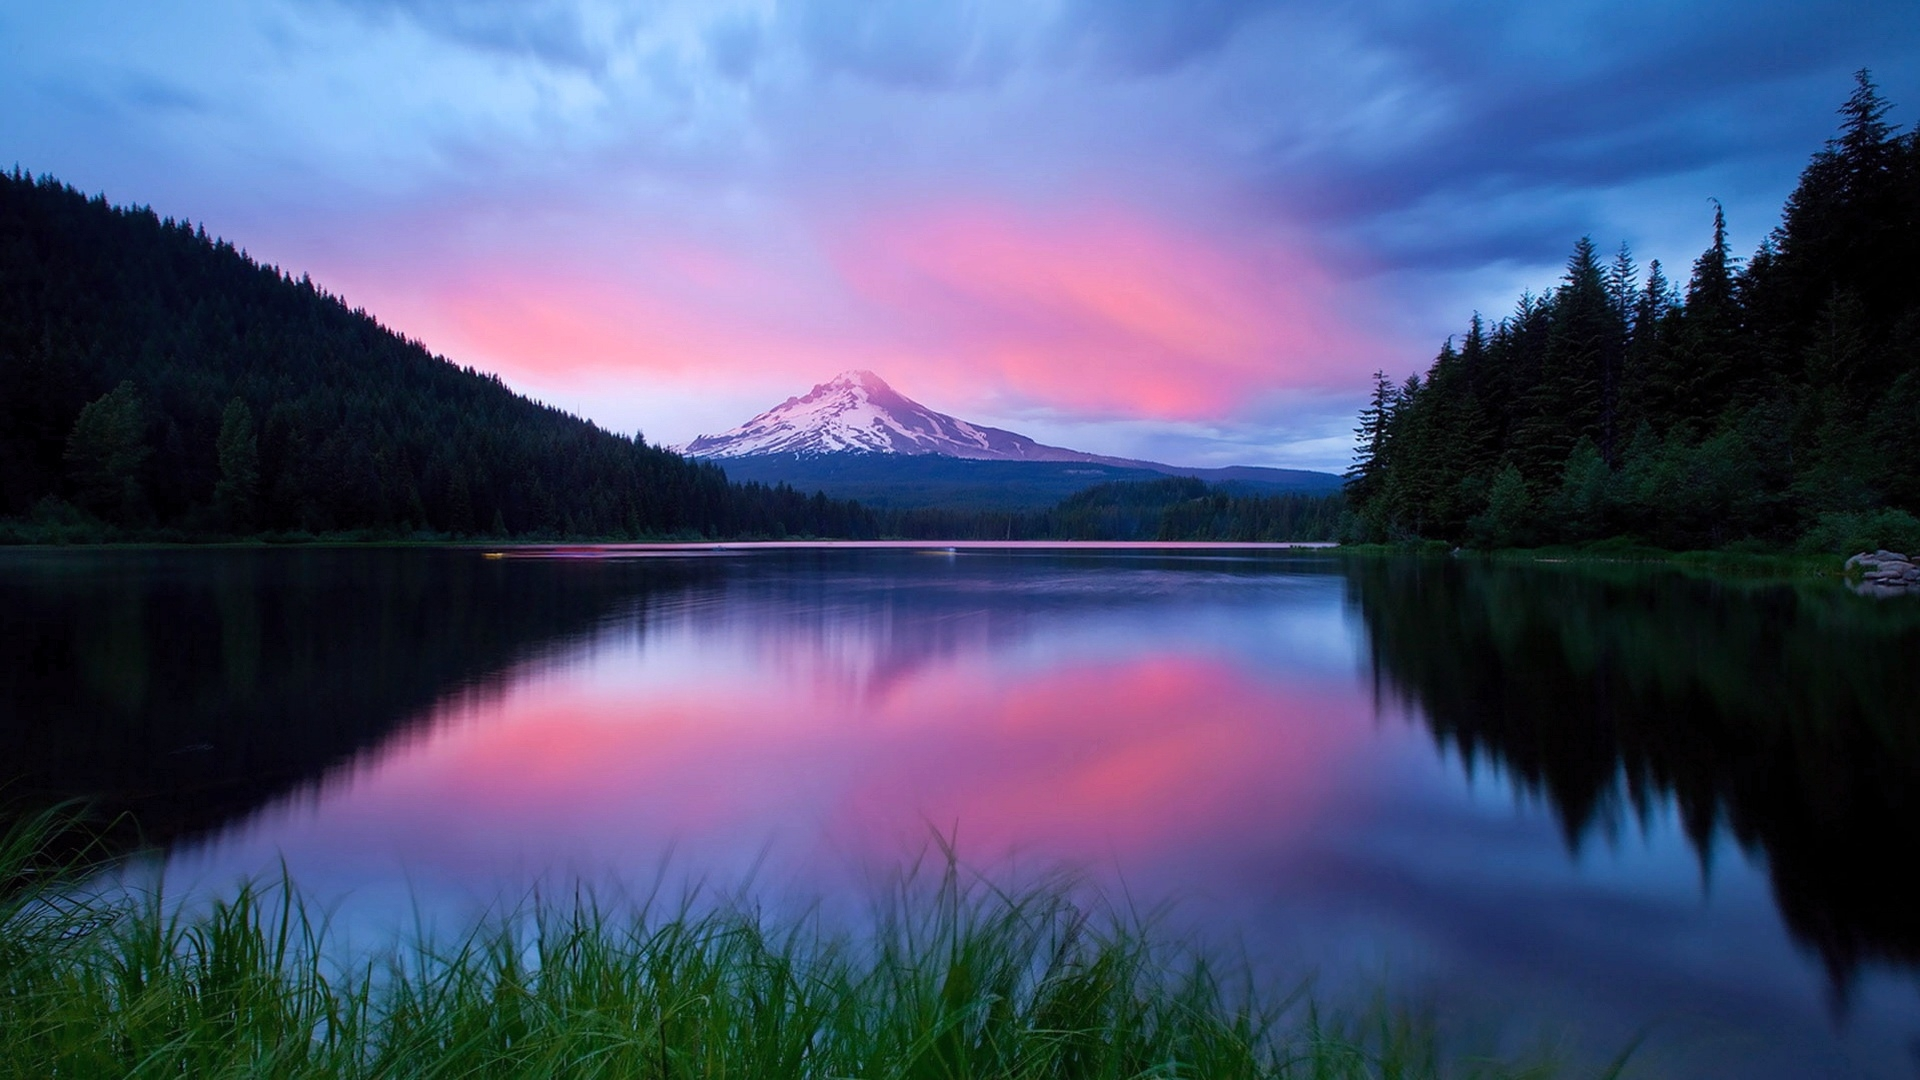 33697 download wallpaper Landscape, Rivers, Sunset, Mountains screensavers and pictures for free